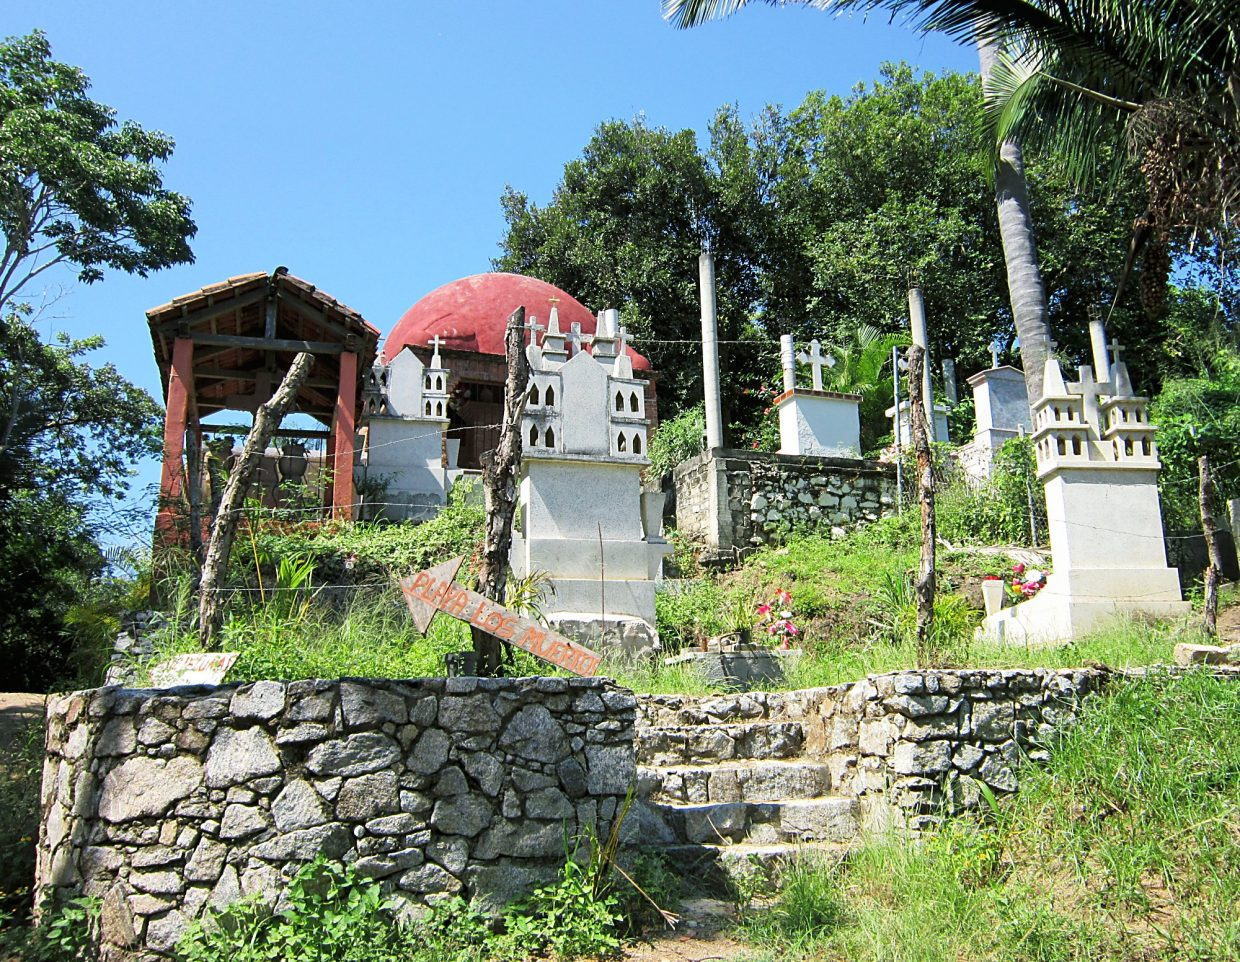 A beautiful graveyard is seen along the road to Playa de Los Muertos. Offers were left by gravesites including candles, food and beer.